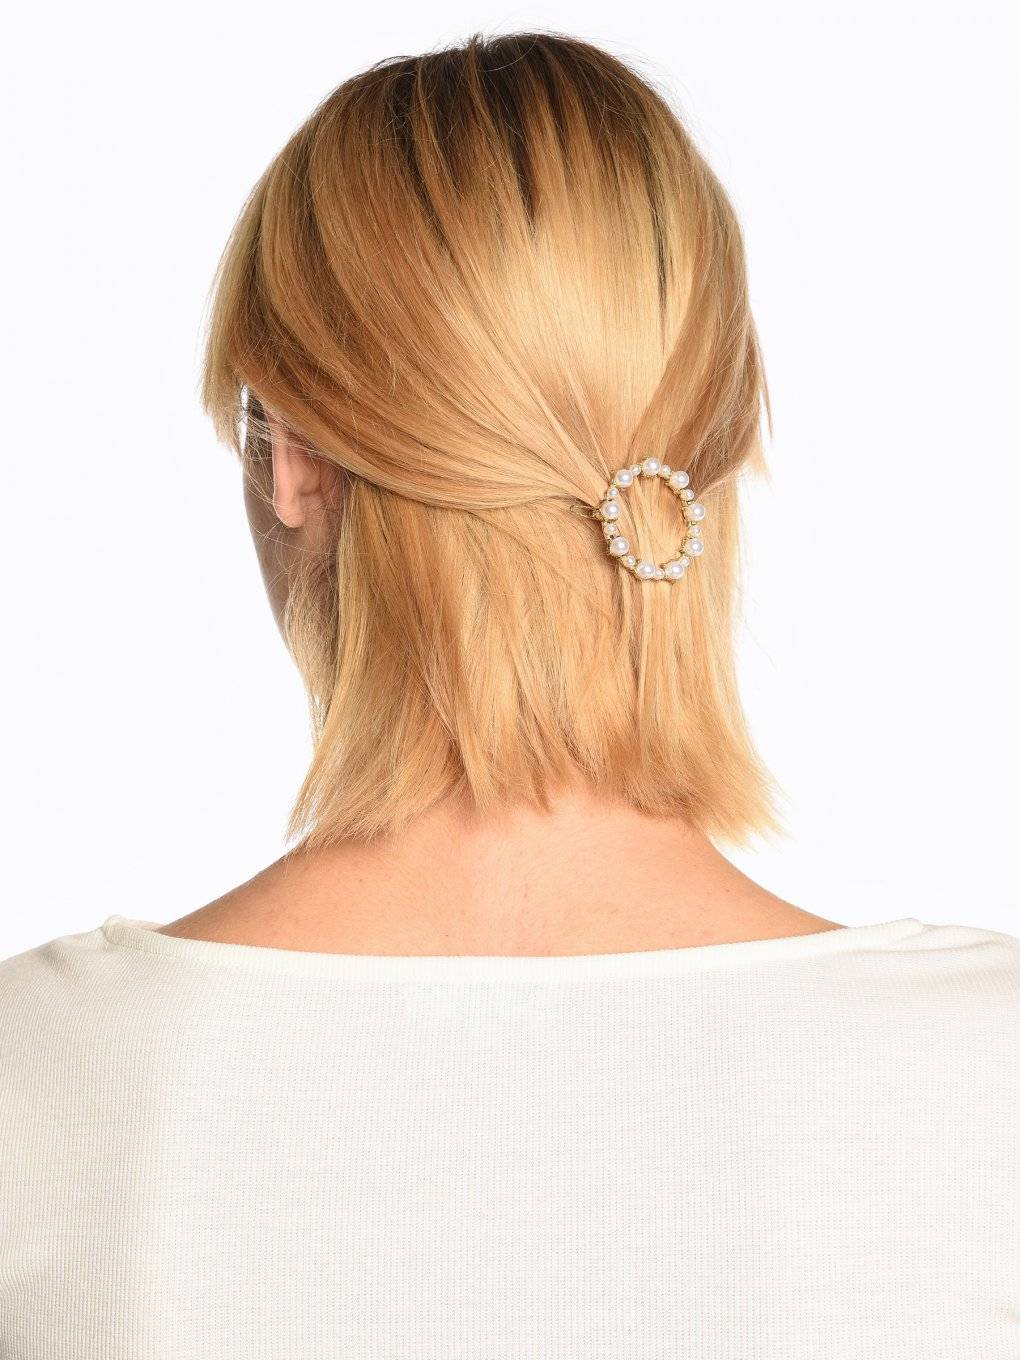 Hairgrip with pearls